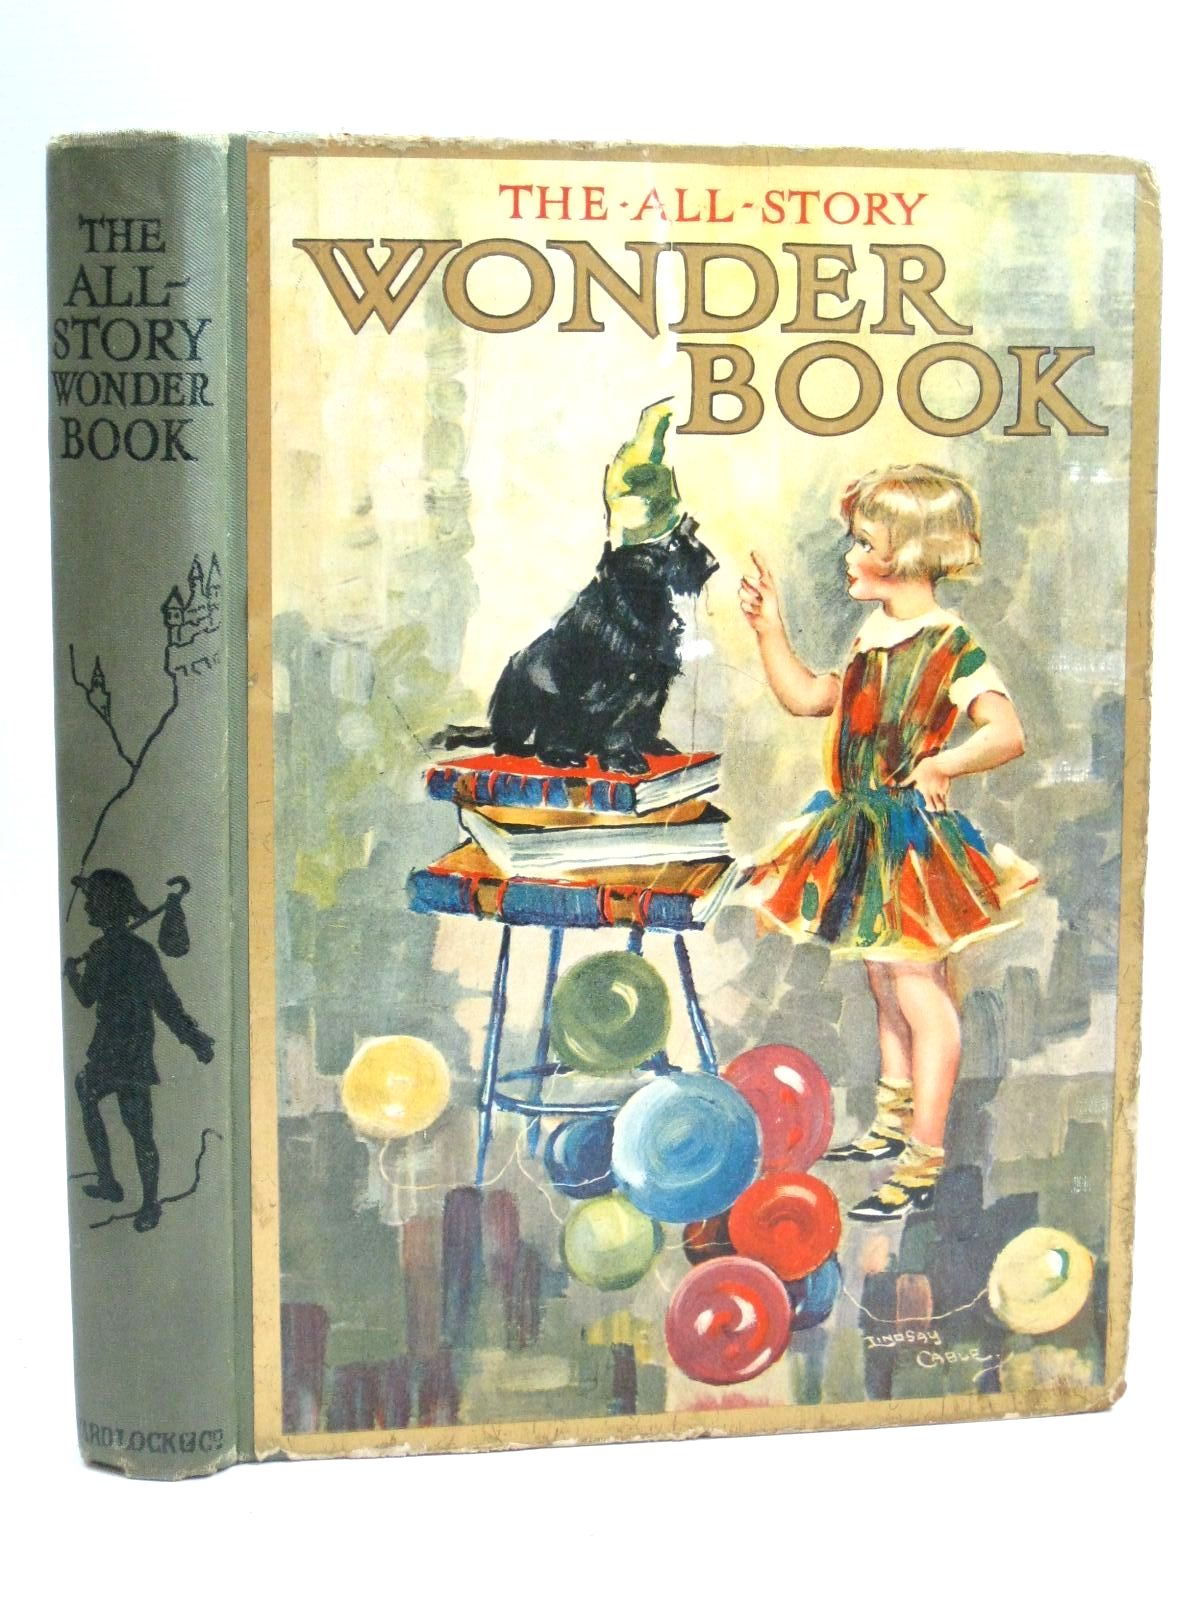 Photo of THE ALL-STORY WONDER BOOK 24TH YEAR written by Golding, Harry<br />Collier, Madeleine<br />Chaundler, Christine<br />Brisley, Nina K.<br />Talbot, Ethel<br />et al, illustrated by Cable, W. Lindsay<br />Tarrant, Percy<br />Theaker, Harry G.<br />Adams, Frank<br />Wright, Alan<br />et al., published by Ward, Lock &amp; Co. Limited (STOCK CODE: 1506003)  for sale by Stella & Rose's Books